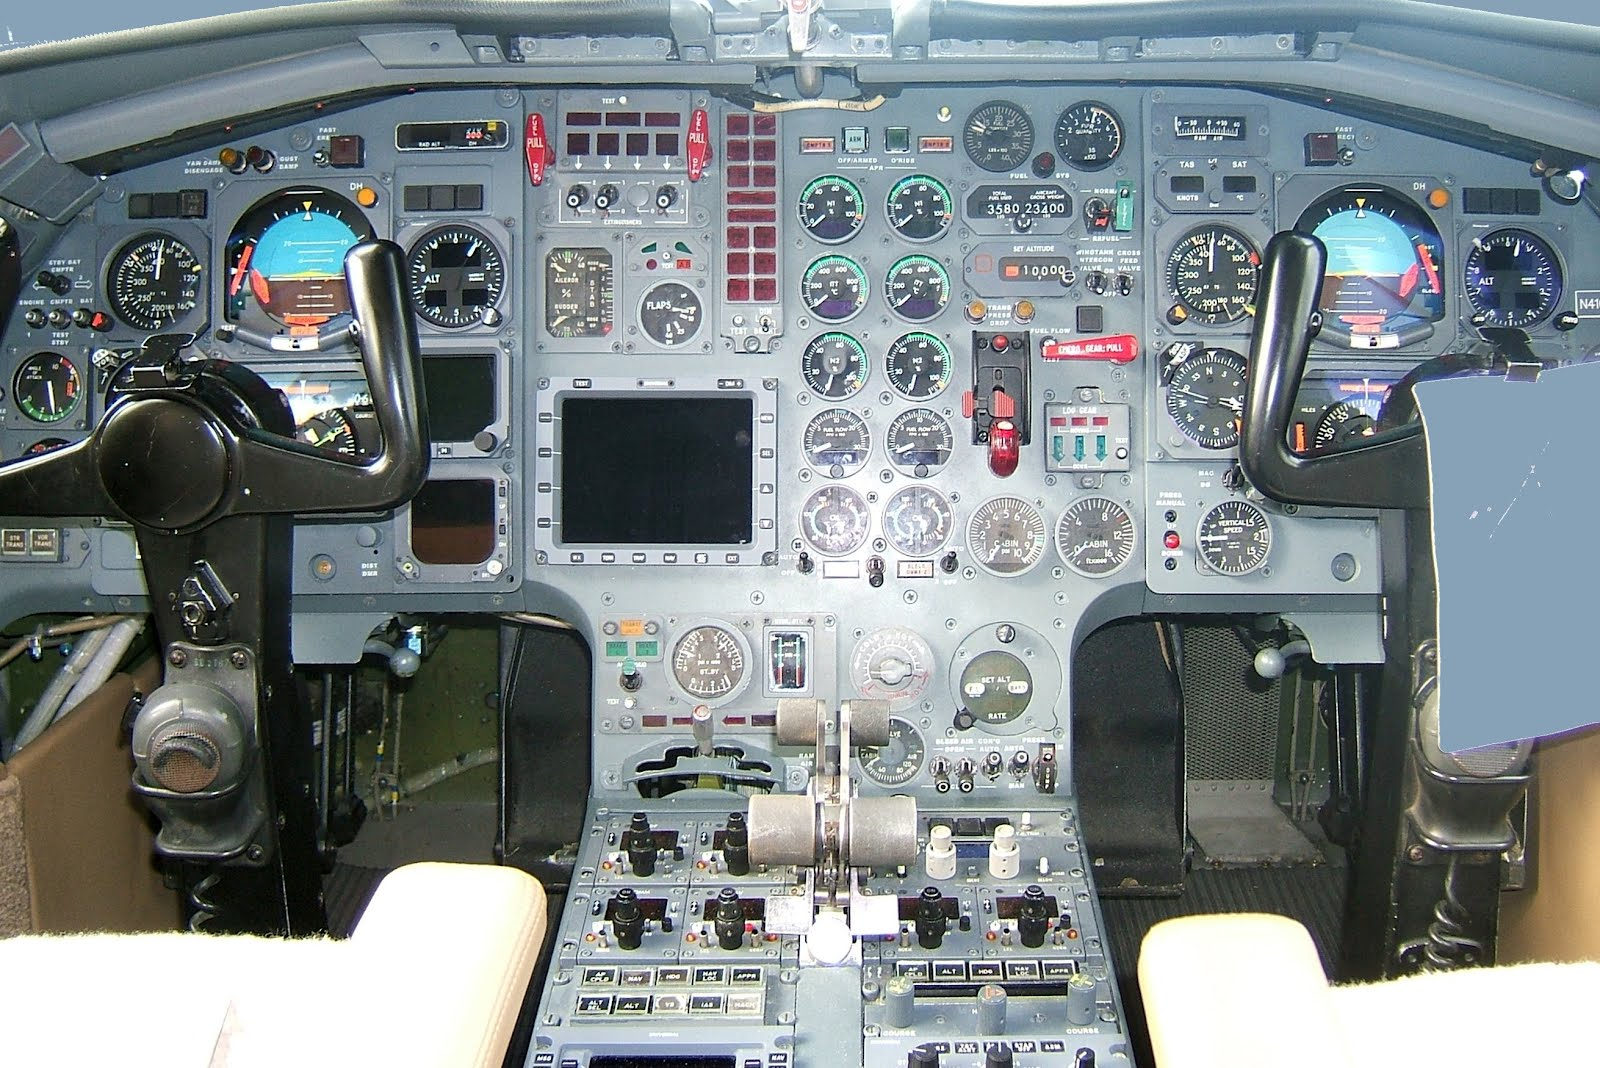 Cockpit Instrument Panel : Instrument panel from the cockpit